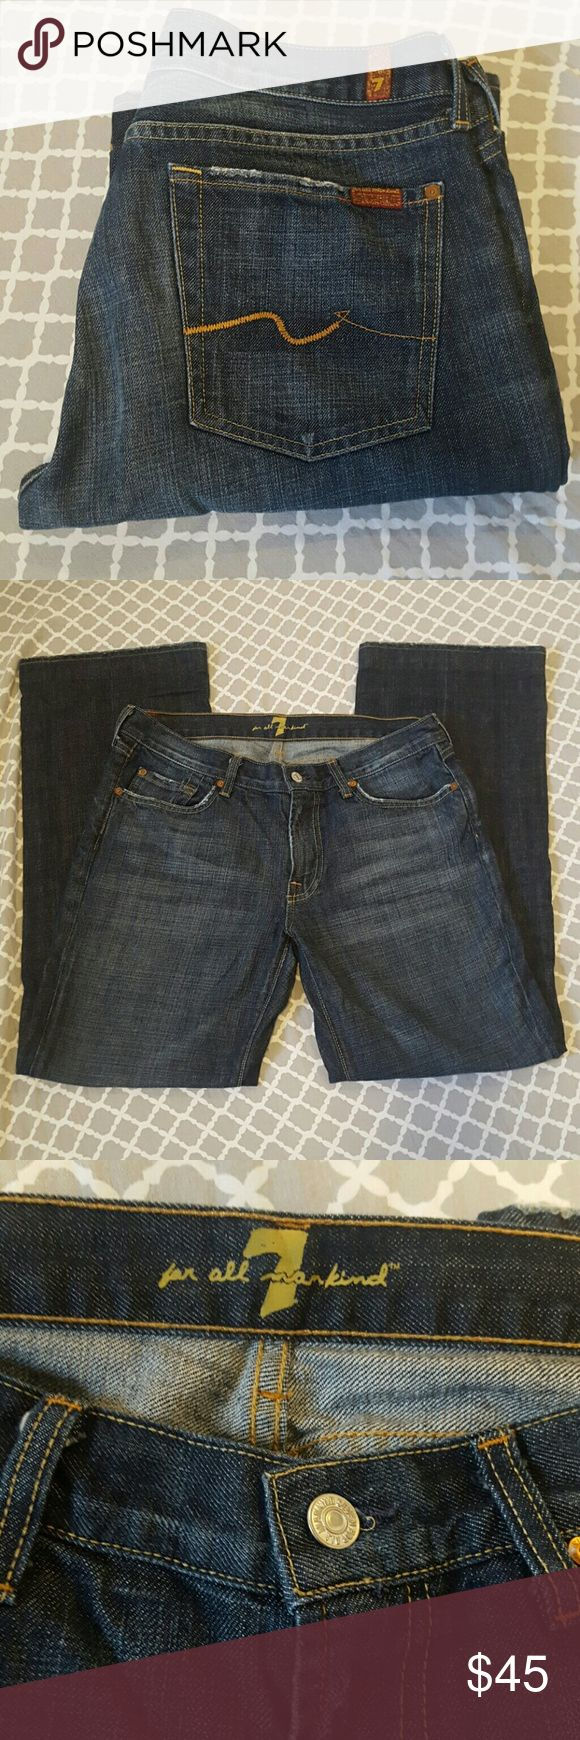 """Men's 7 For all Mankind denim Premium designer men's denim. Medium dark wash. Minimally distressed at bottom but not noticeable while wearing. Well taken  care of, laundered properly. 33"""" waist, 31"""" inseam. Signature 7FAMK back pocket stitching. 7 For All Mankind Jeans Bootcut"""